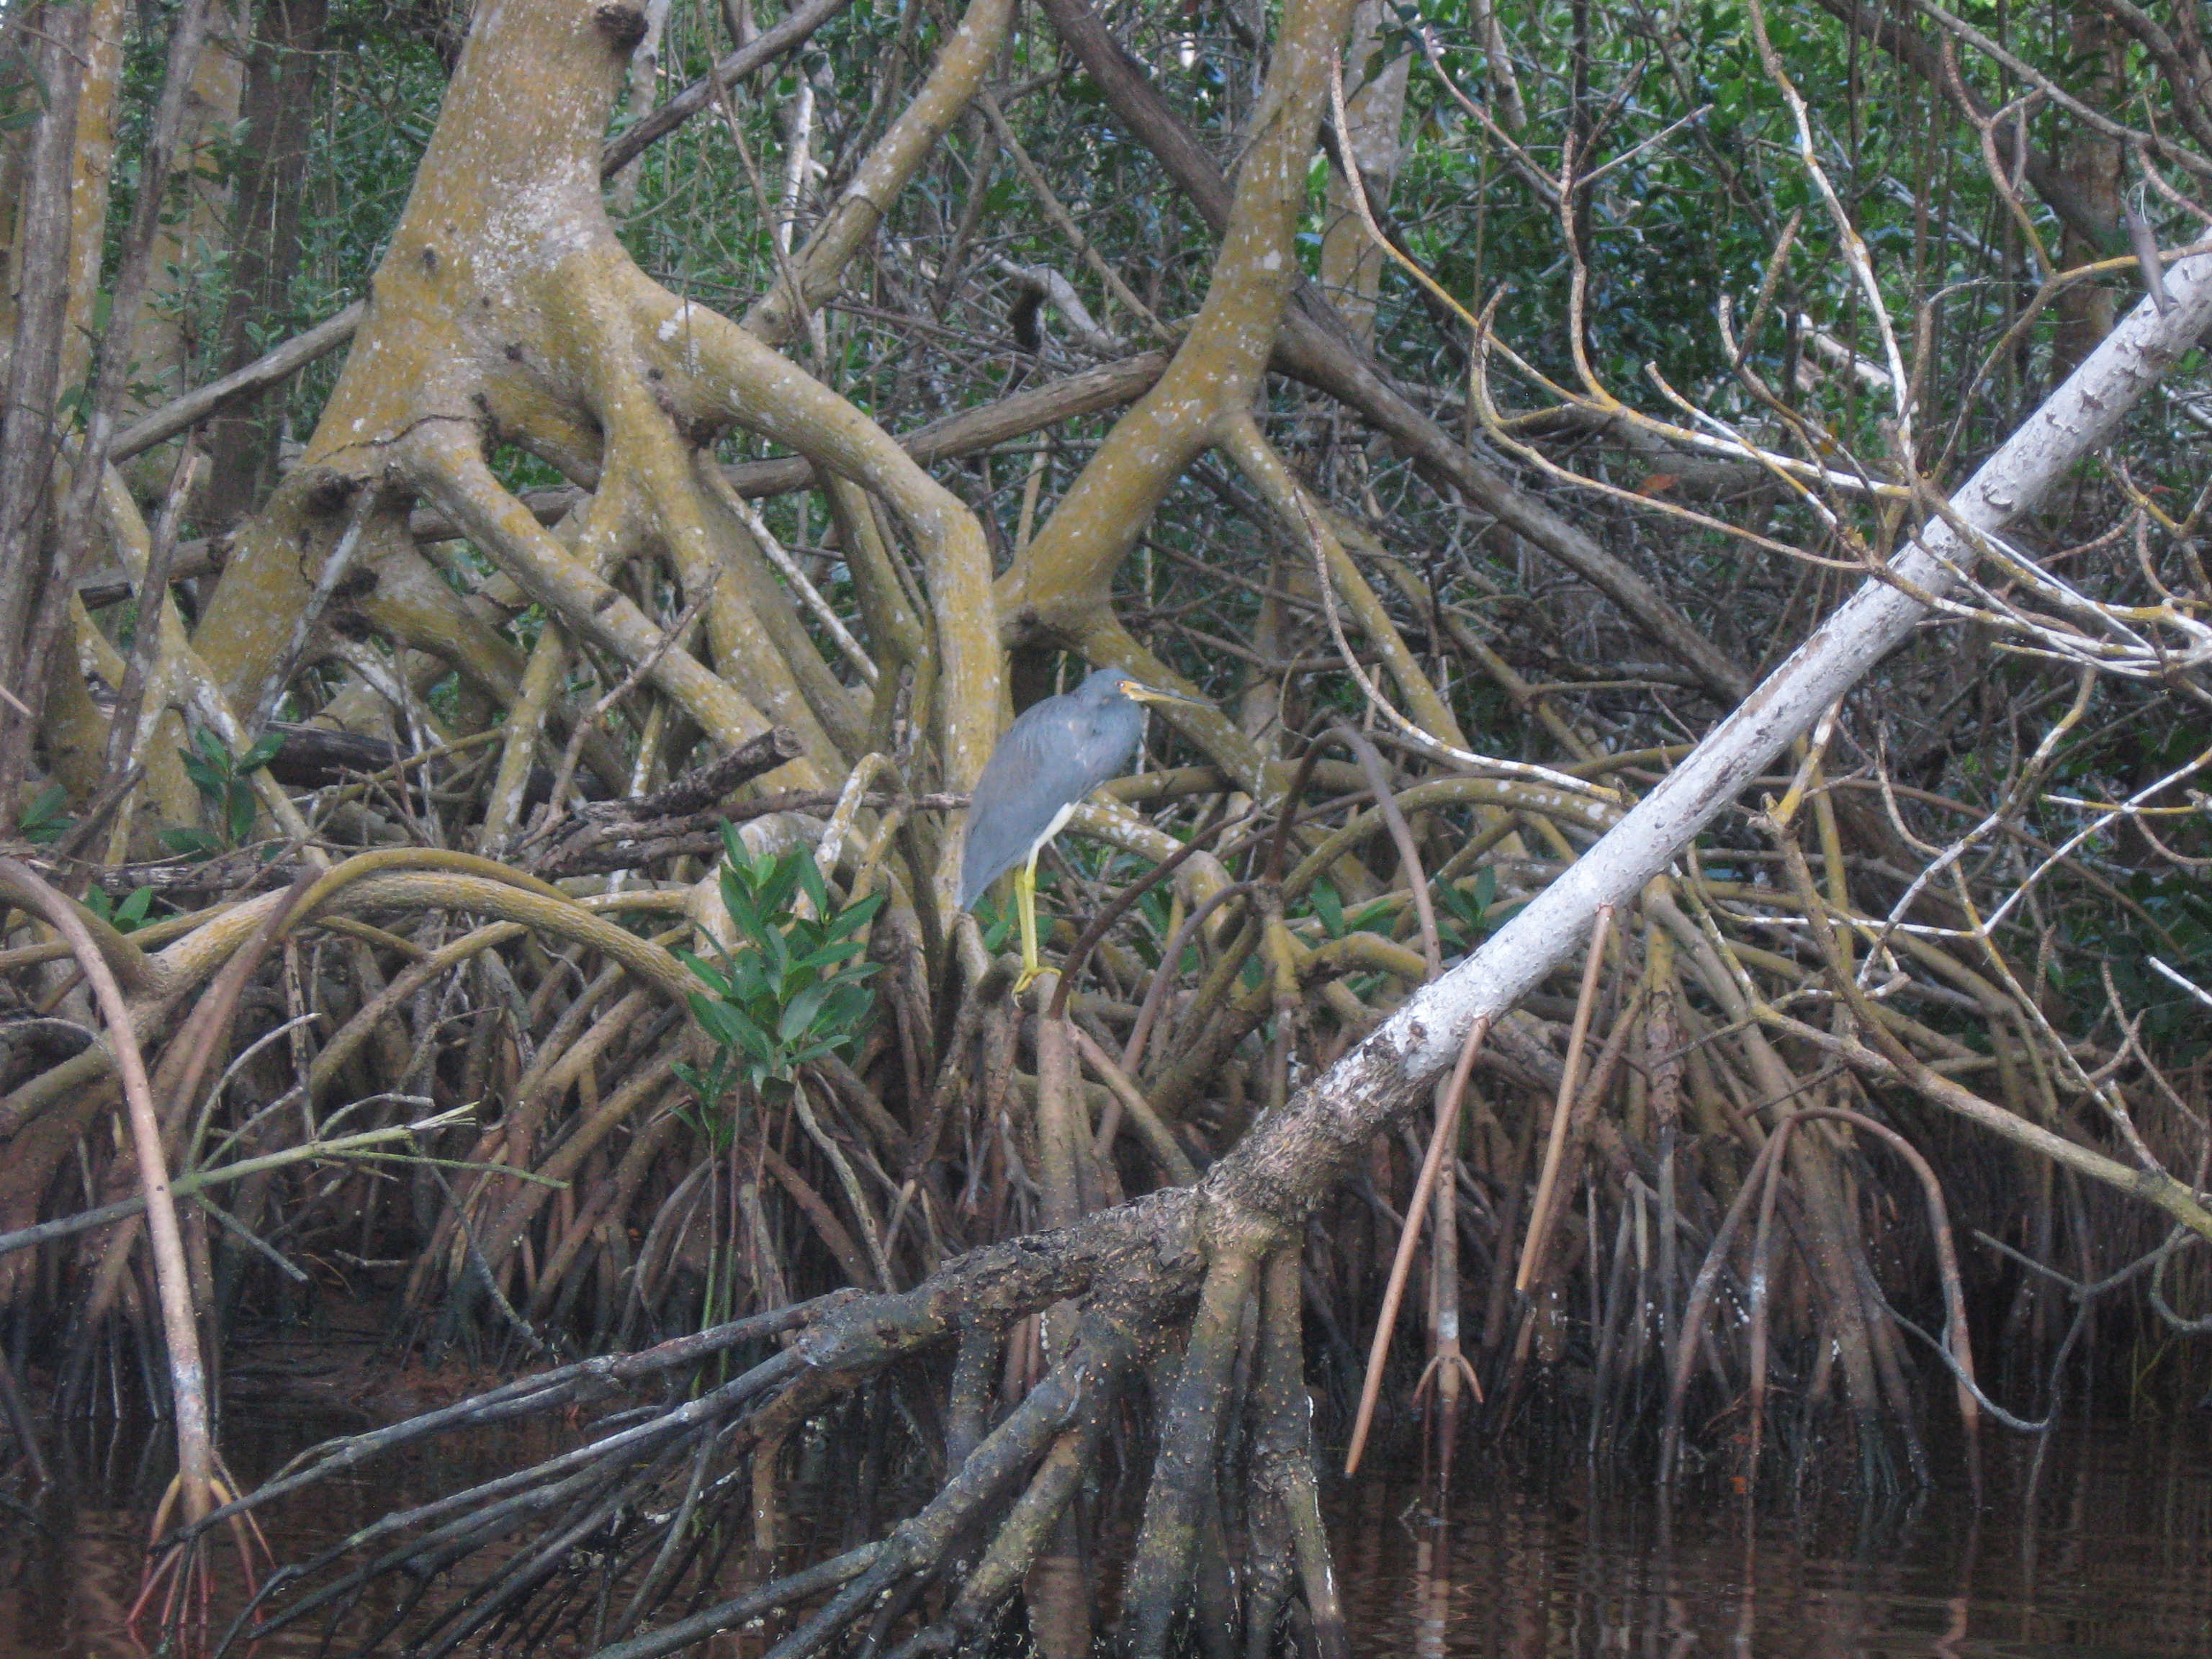 Tricolored Heron in Mangrove